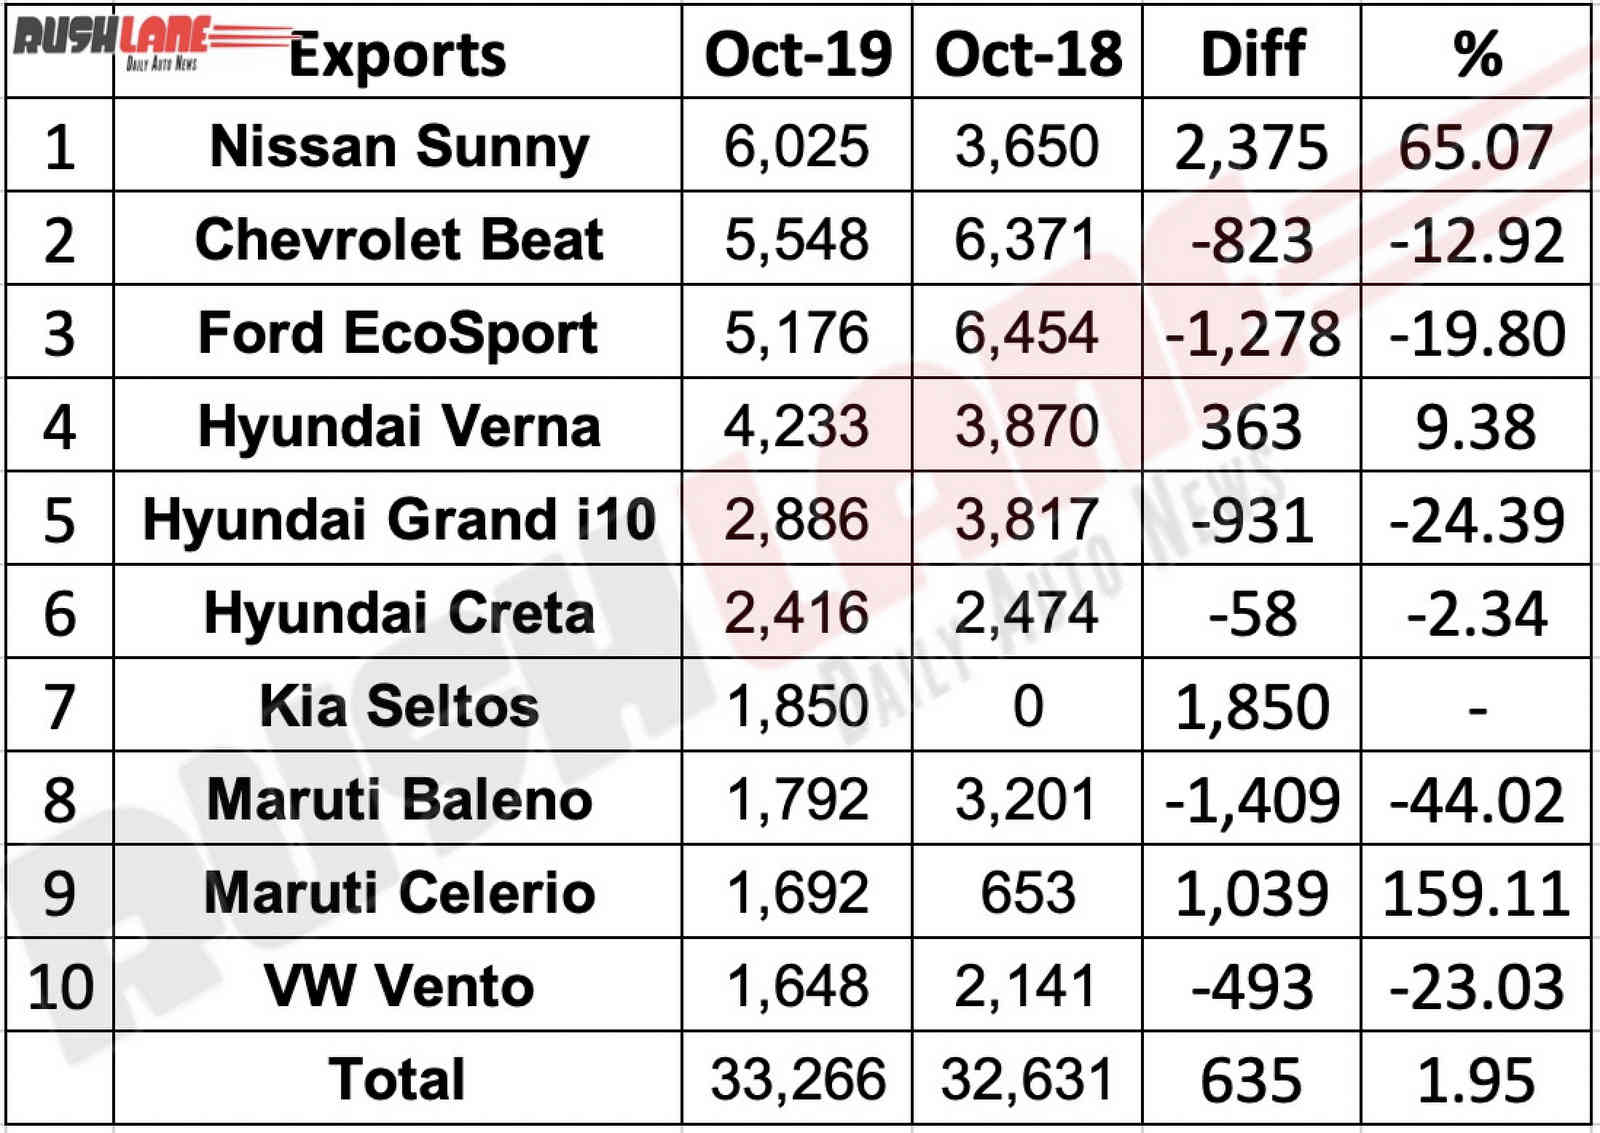 Top 10 cars exported from India Oct 2019